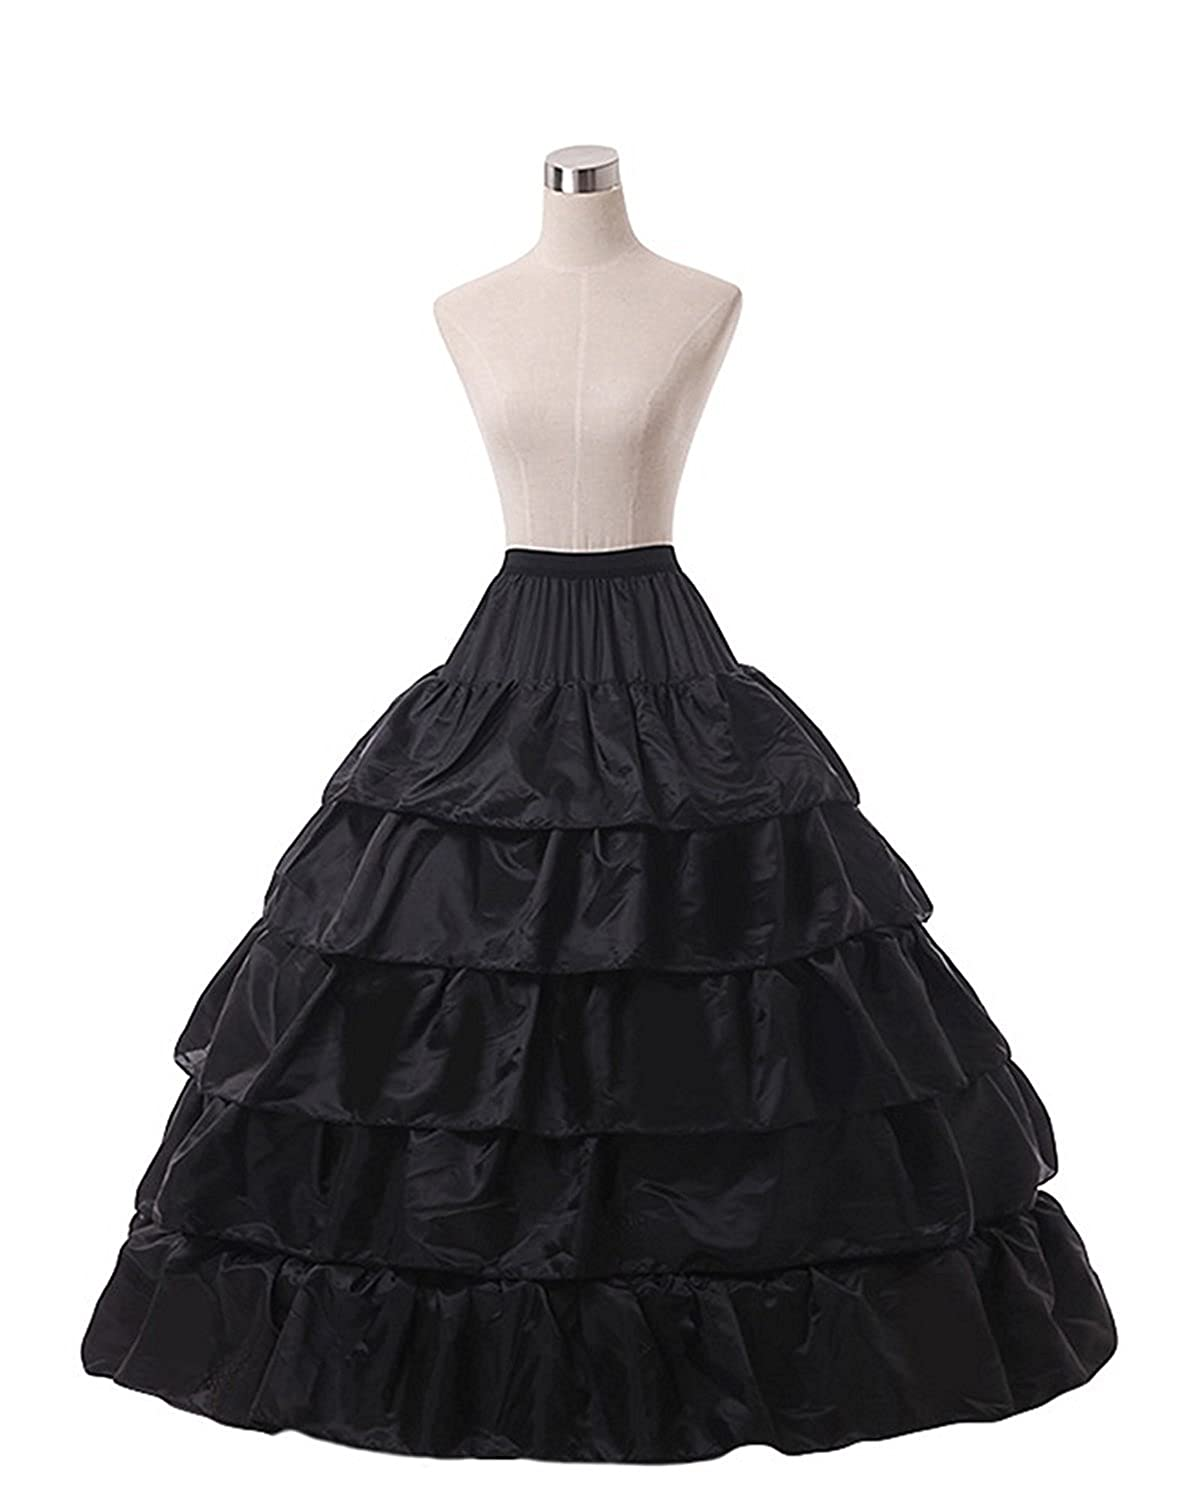 ec073038ef Verabeauty Petticoat Skirt for Women Puffy Ball Gown Slip Crinoline  Underskirt Black at Amazon Women's Clothing store: